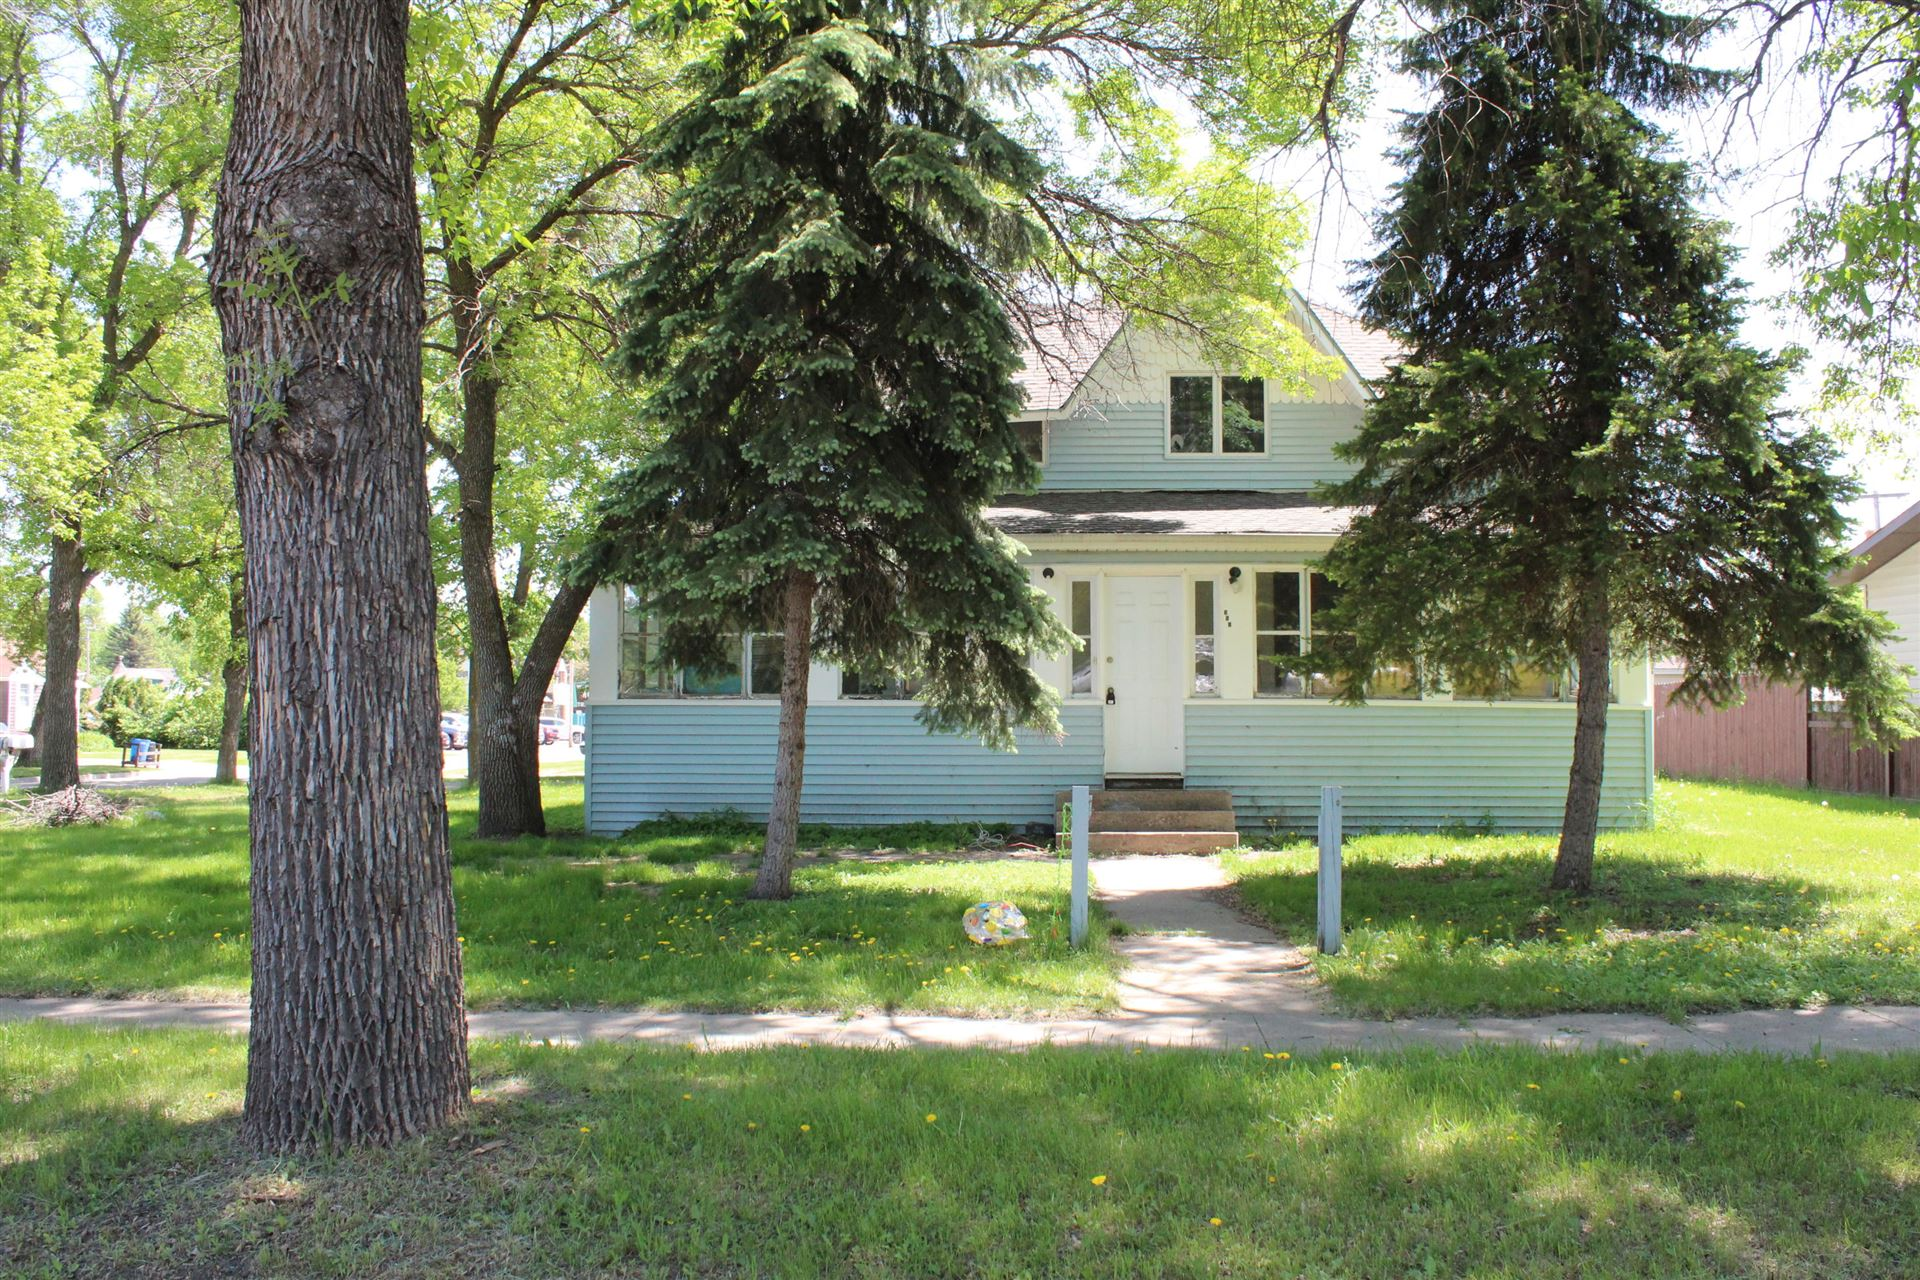 Photo for 305 9th Street SE, Cooperstown, ND 58425 (MLS # 20-33)